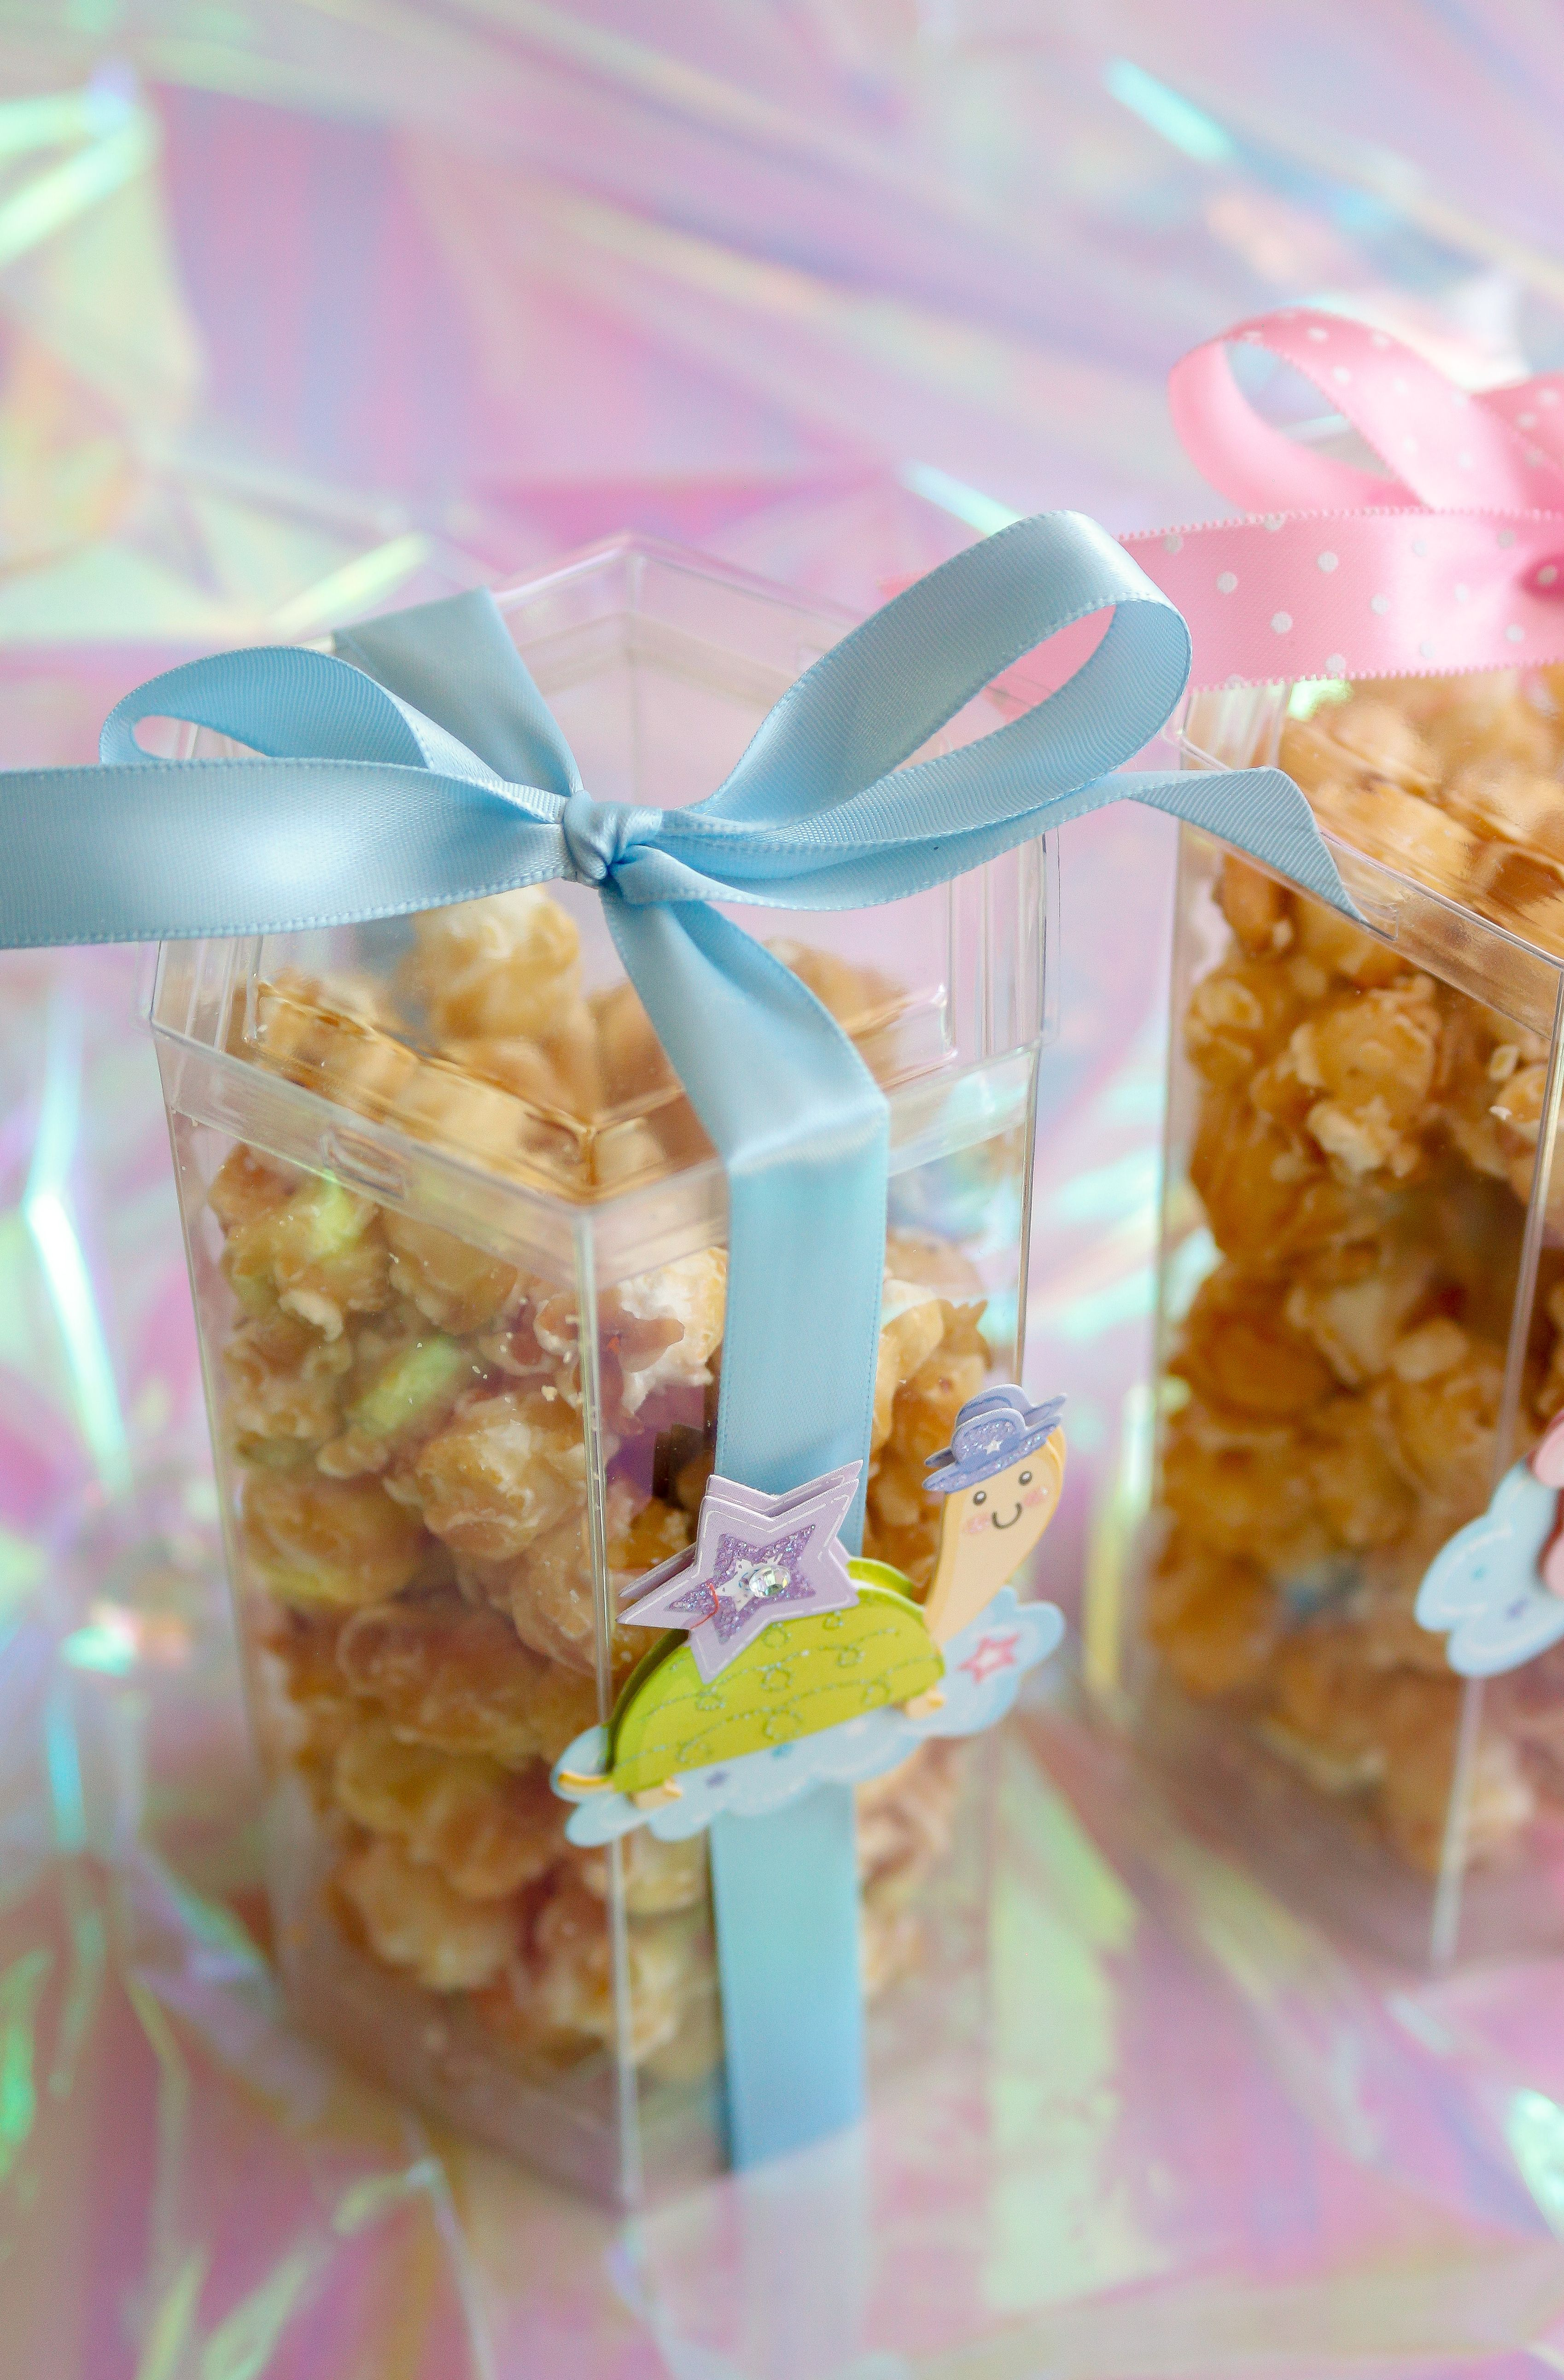 Diy Baby Shower Favor Ideas Jordans Easy Entertaining #Ad @Clearbags